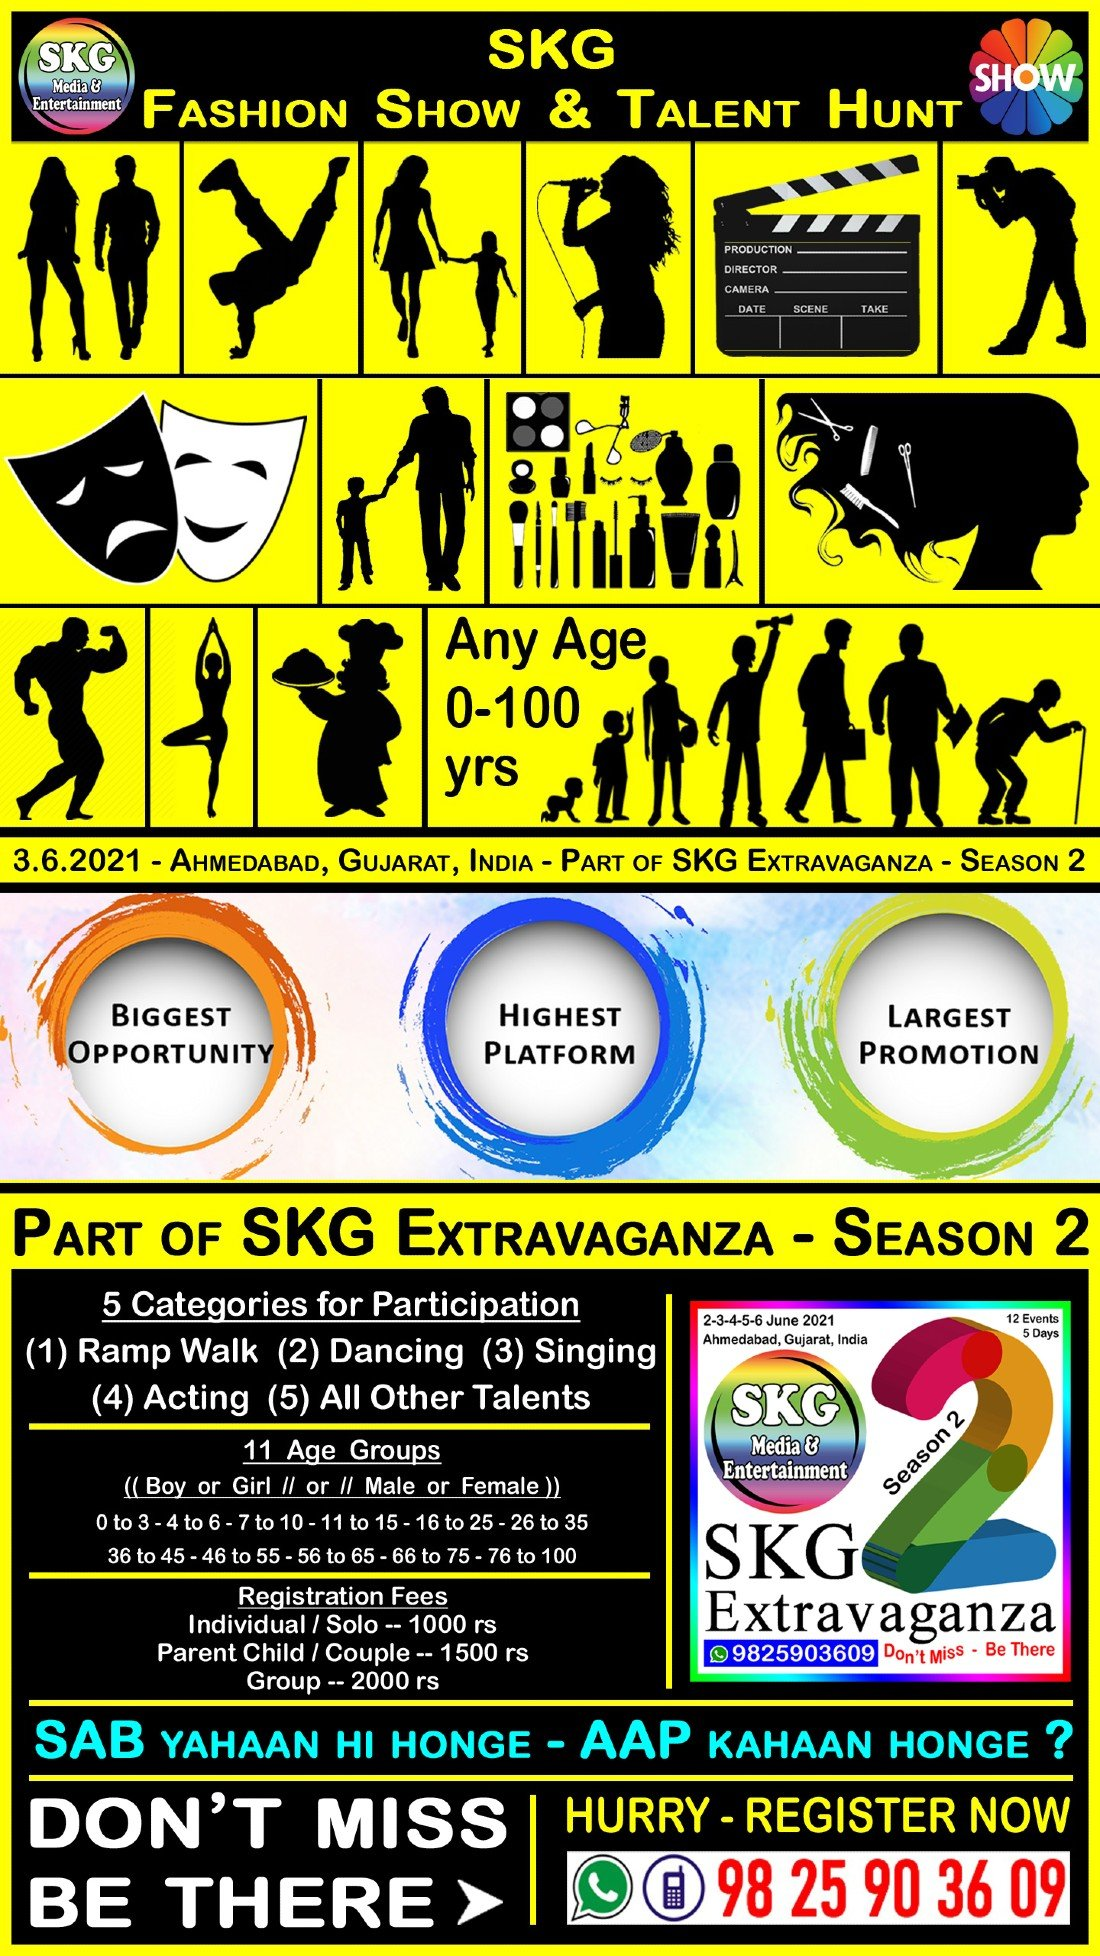 SKG Fashion Show & Talent Hunt (( Event No 8 of 12 - SKG Extravaganza Season 2 - 5 Days 12 Events )), 3 June